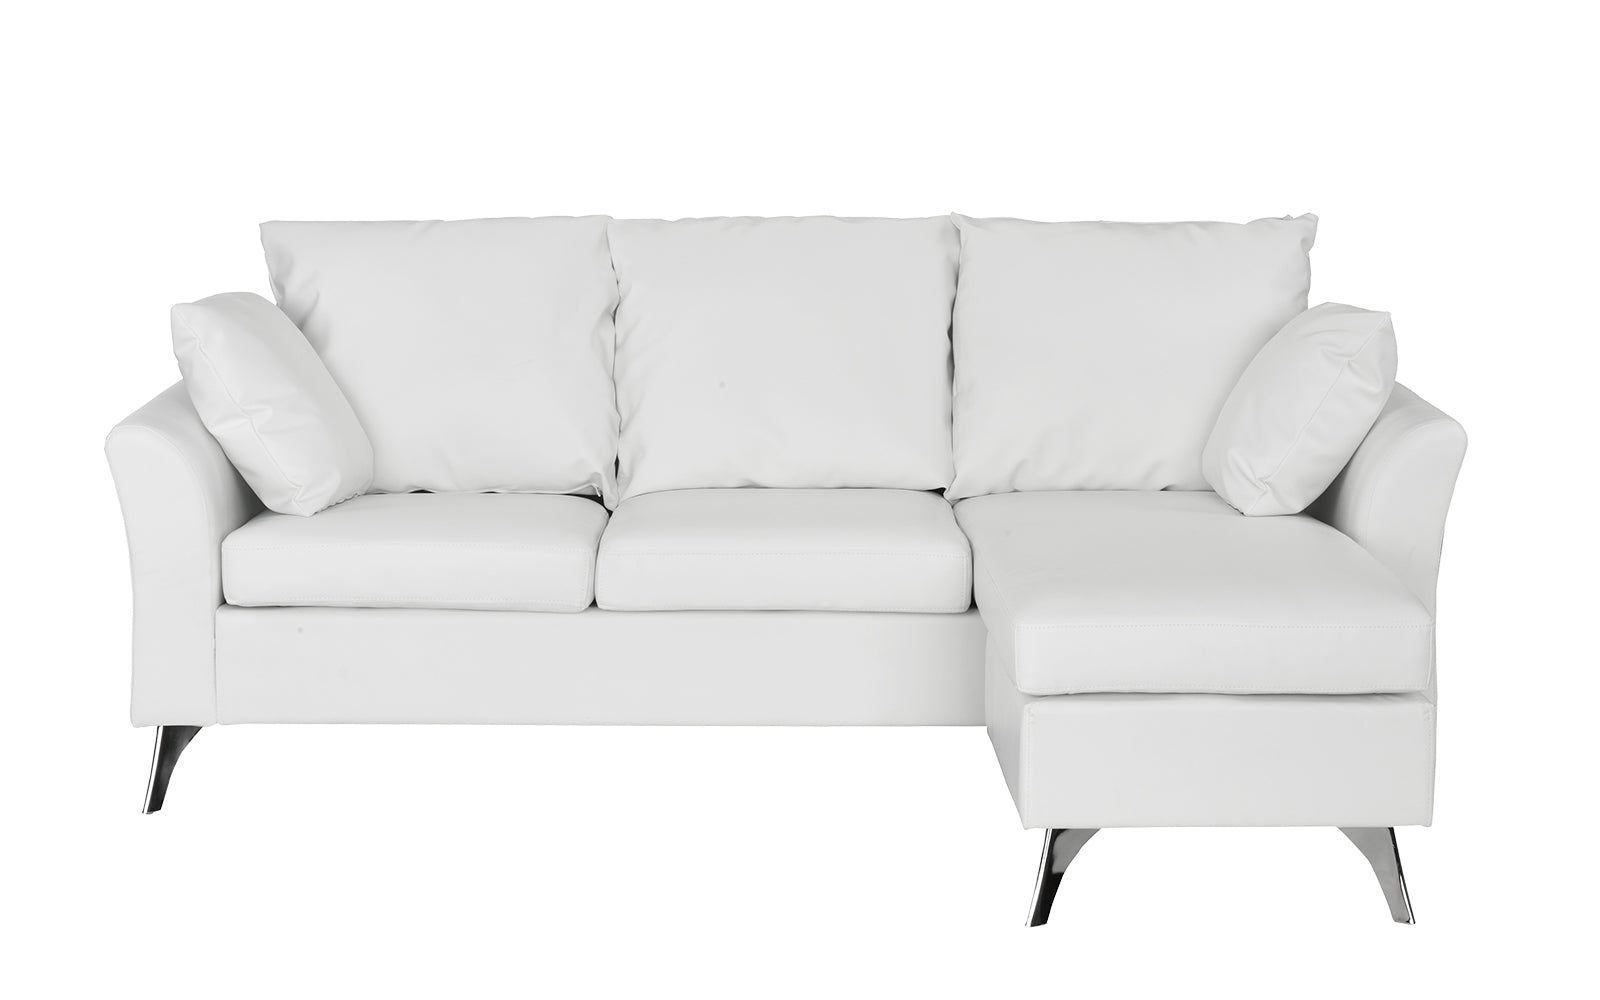 Leather Configurable Space Saving Sectional Sofa Image